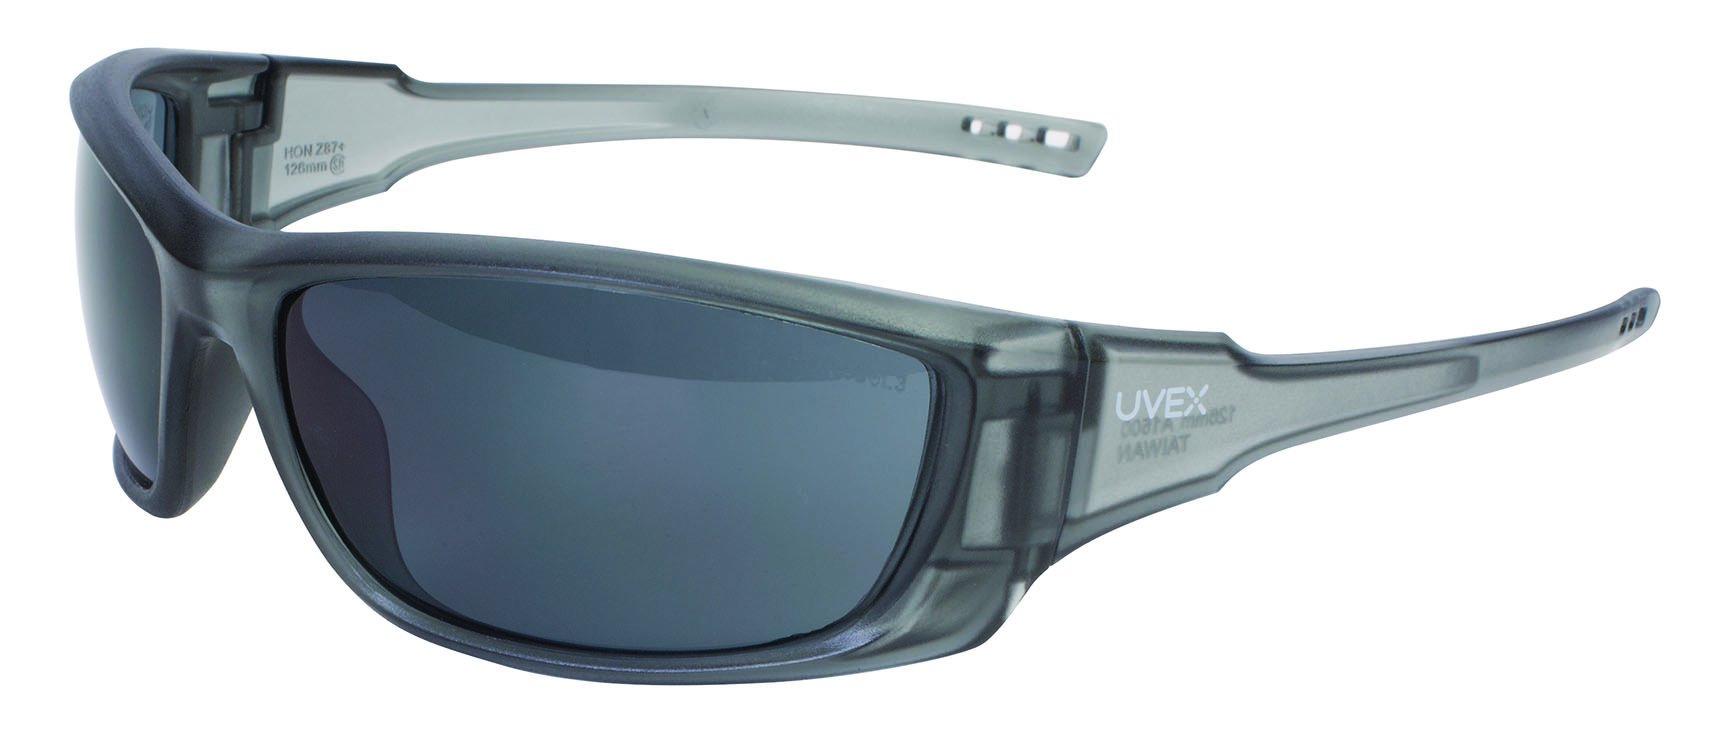 UVEX by Honeywell S2161 A1500 Series Safety Eyewear with Gray Frame, Gray Lens and Scratch-Resistant Hard Coat by Honeywell